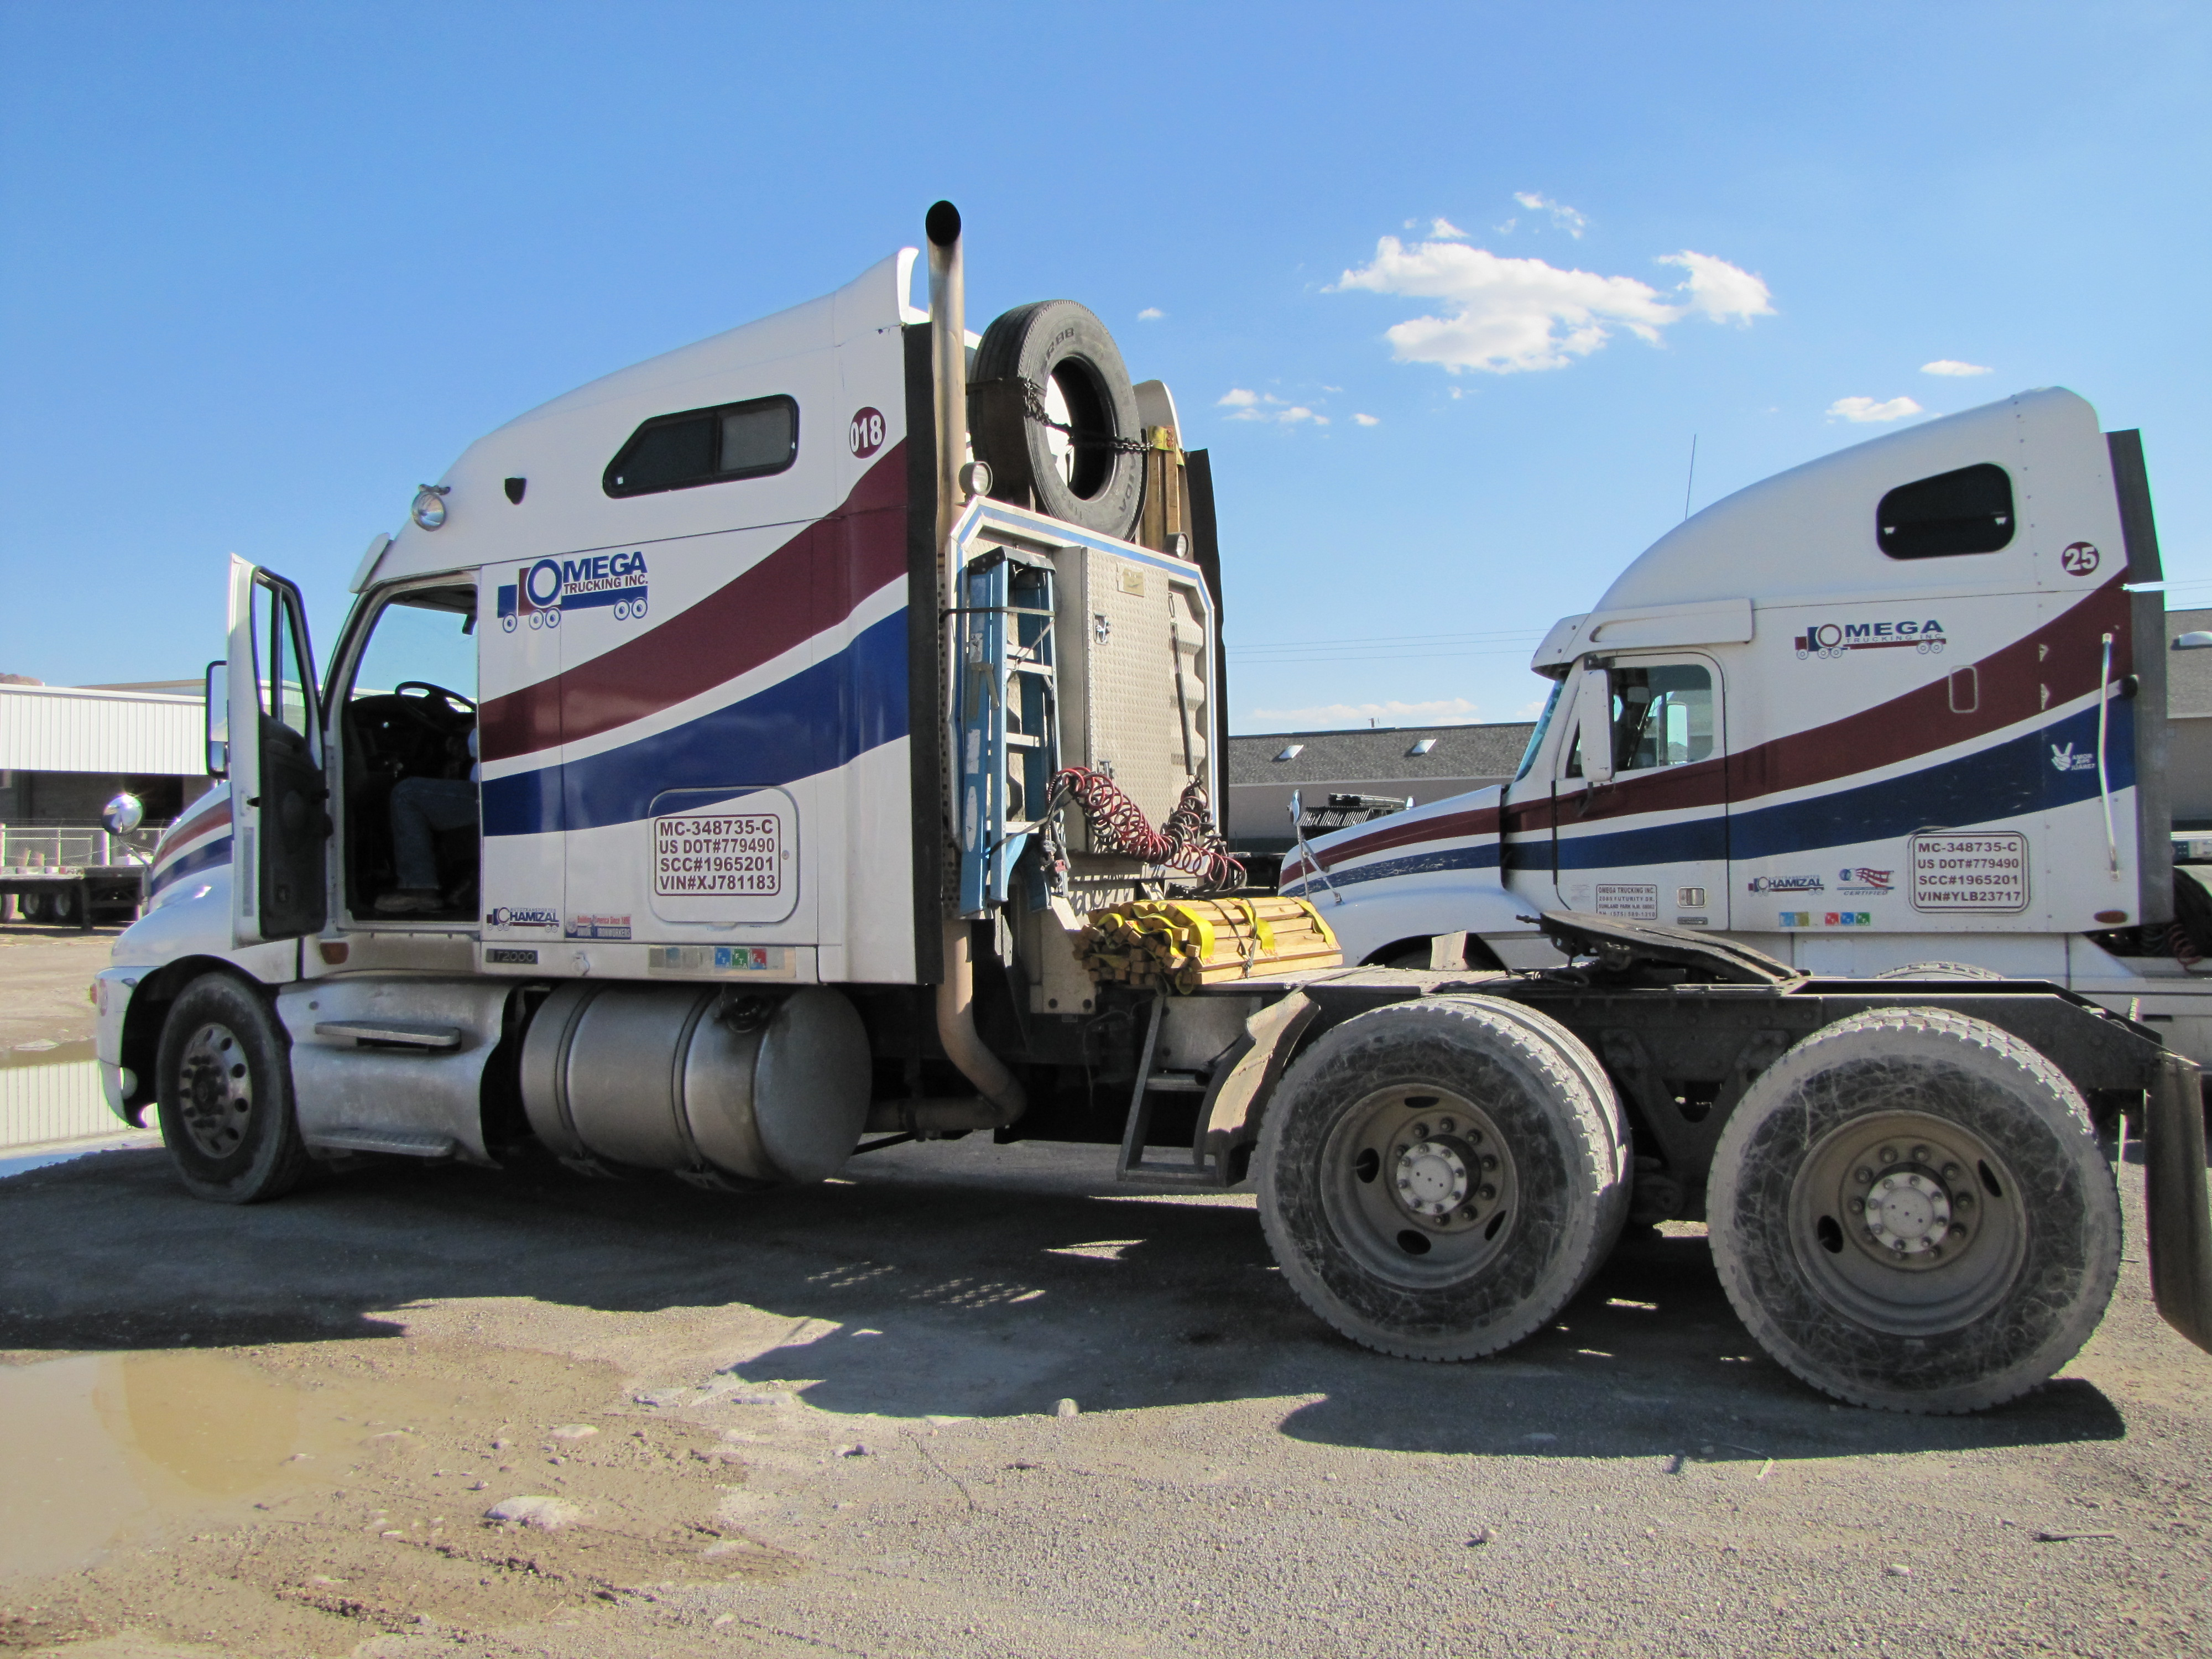 A truck used by Omega Trucking to transport construction material manufactured in Mexican factories across the United States.